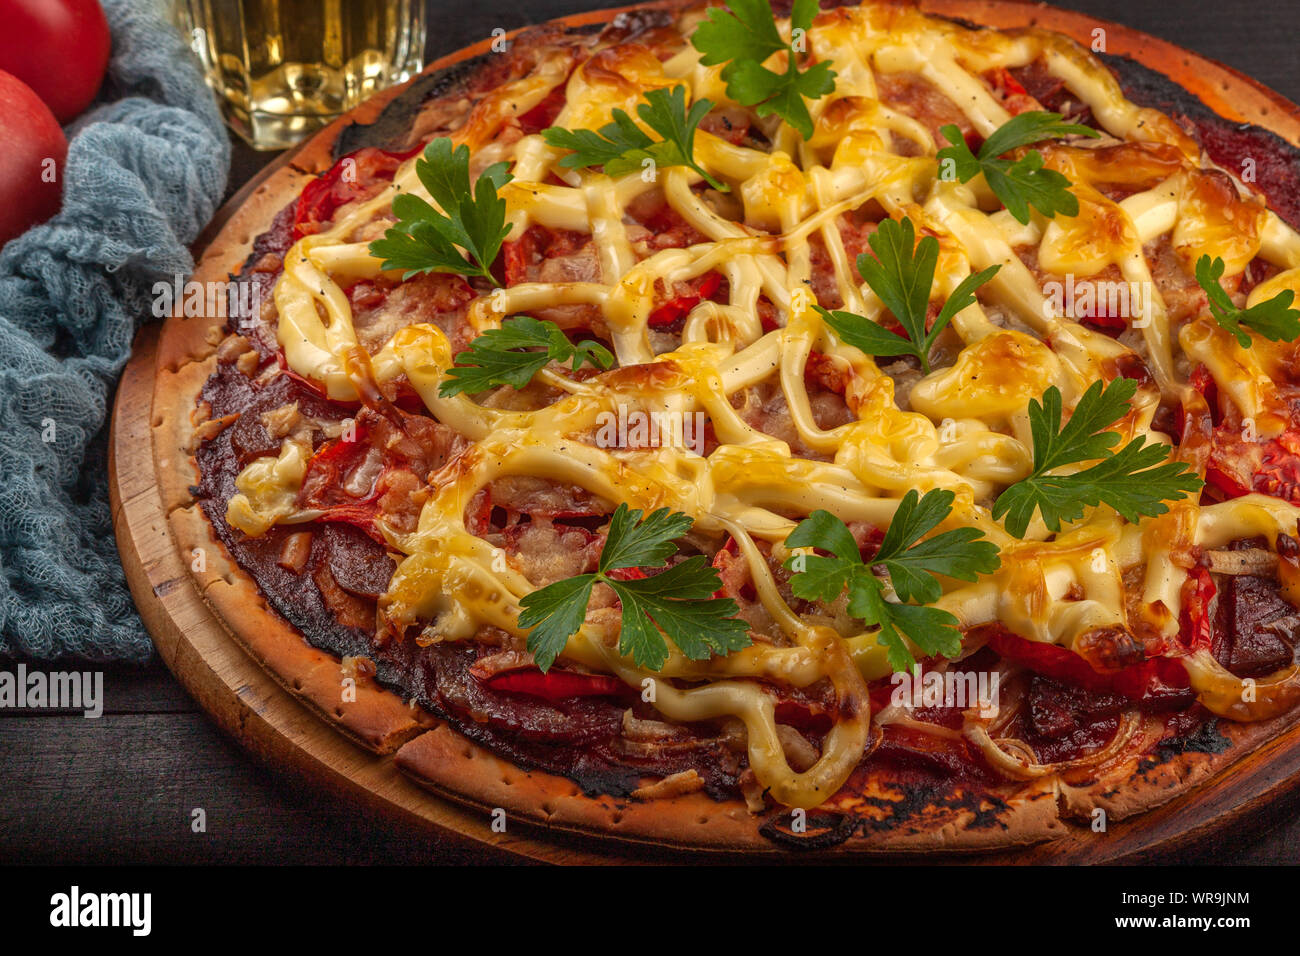 Homemade pizza with meat, sausage, cheese and tomatoes Stock Photo